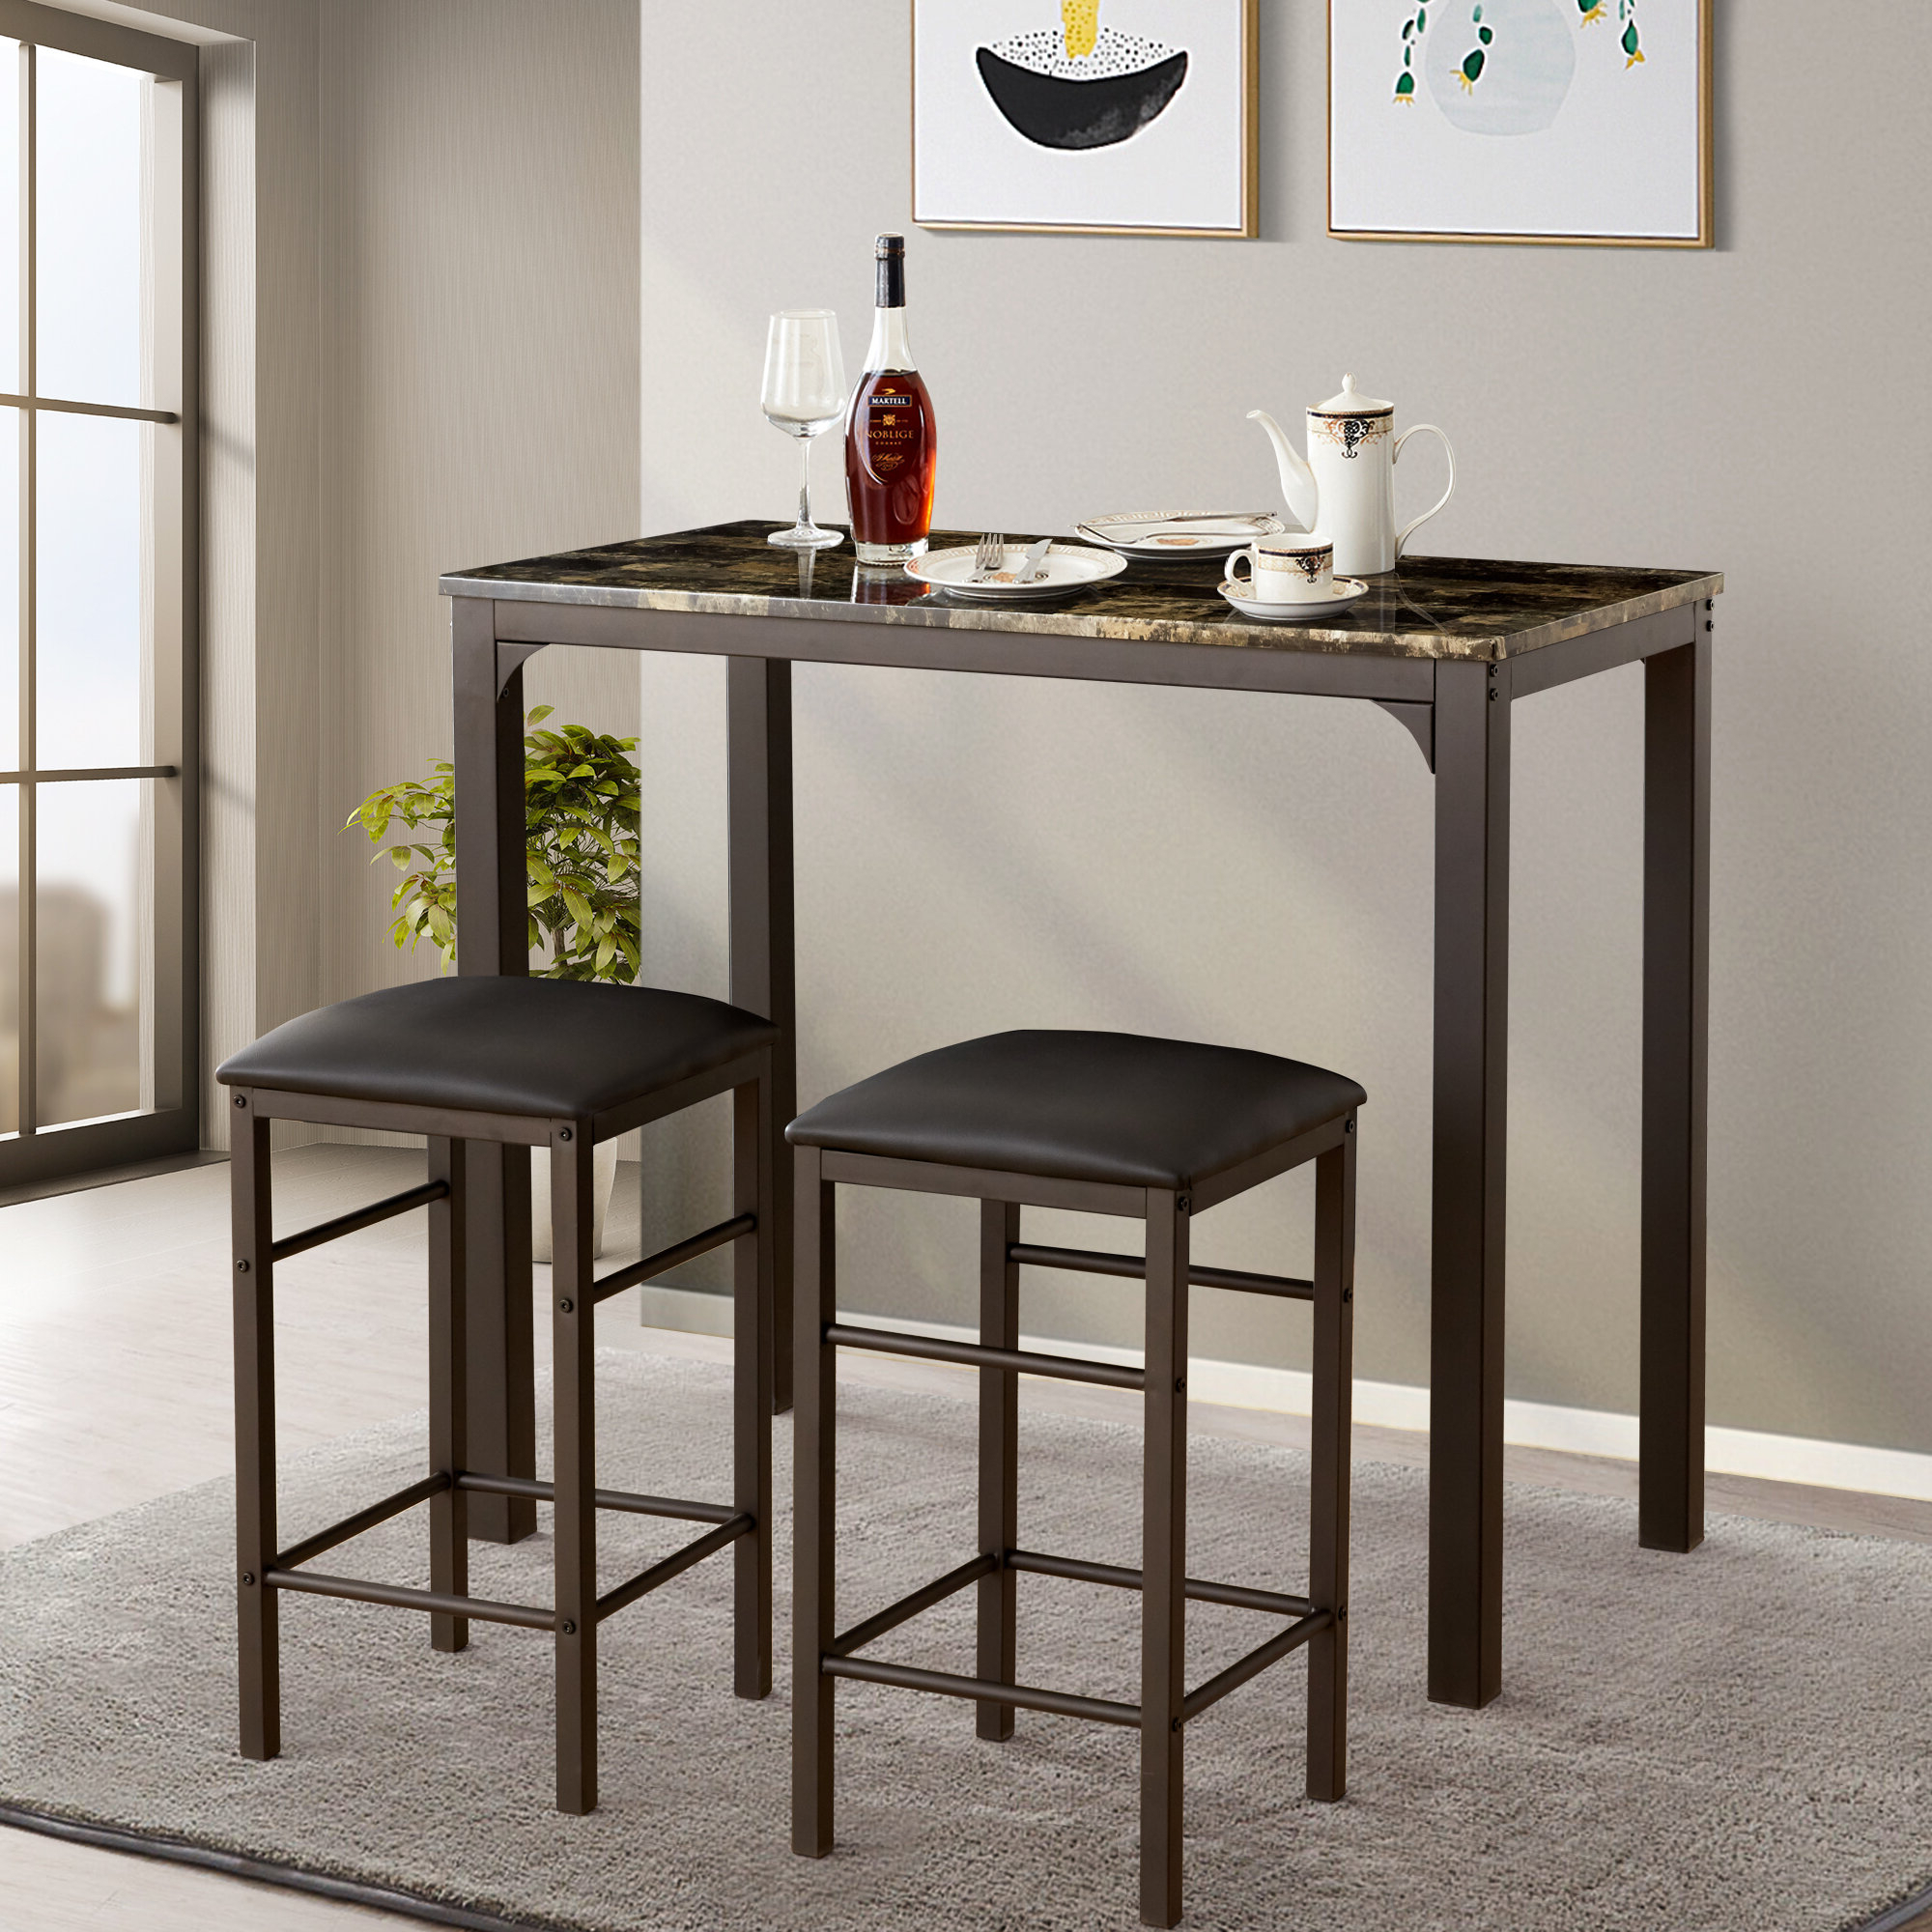 Tappahannock 3 Piece Counter Height Dining Set Throughout Current Moorehead 3 Piece Counter Height Dining Sets (View 16 of 20)